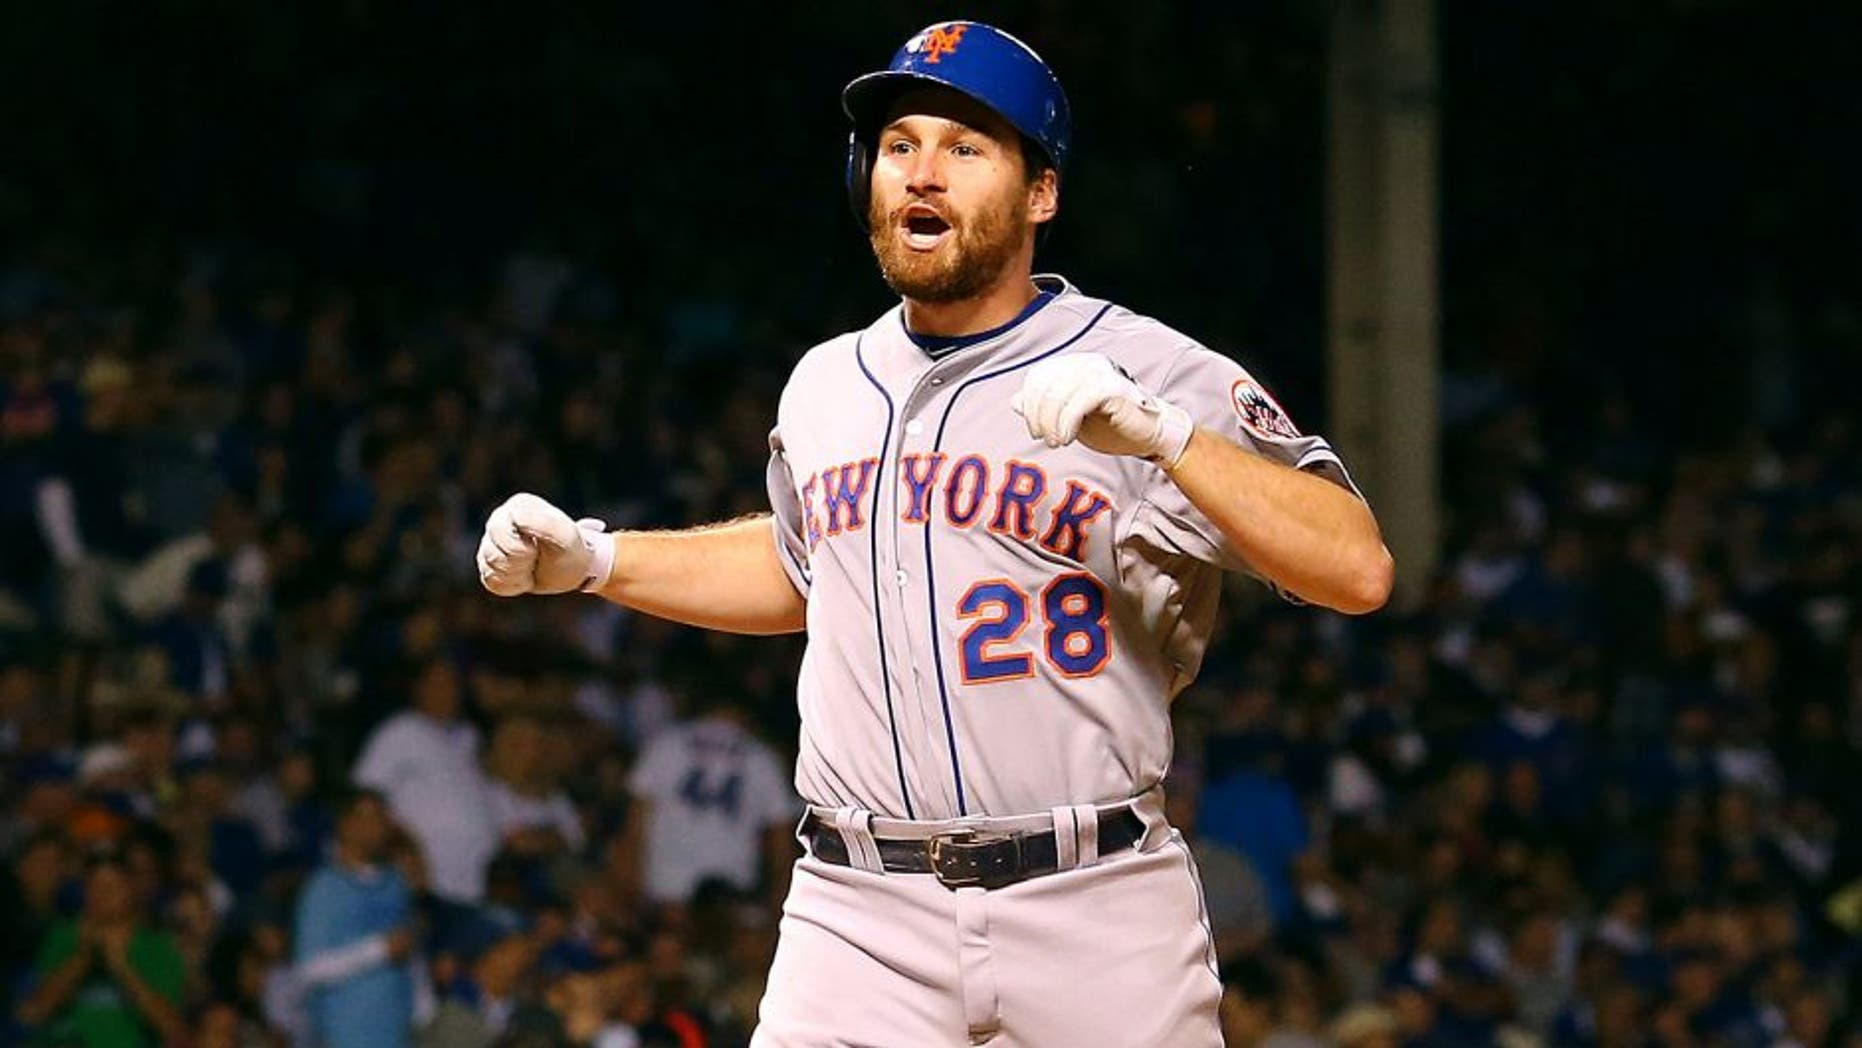 CHICAGO, IL - OCTOBER 21: Daniel Murphy #28 of the New York Mets celebrates after hitting a two run home run in the eighth inning against Pedro Strop #46 of the Chicago Cubs during game four of the 2015 MLB National League Championship Series at Wrigley Field on October 21, 2015 in Chicago, Illinois. (Photo by Elsa/Getty Images)